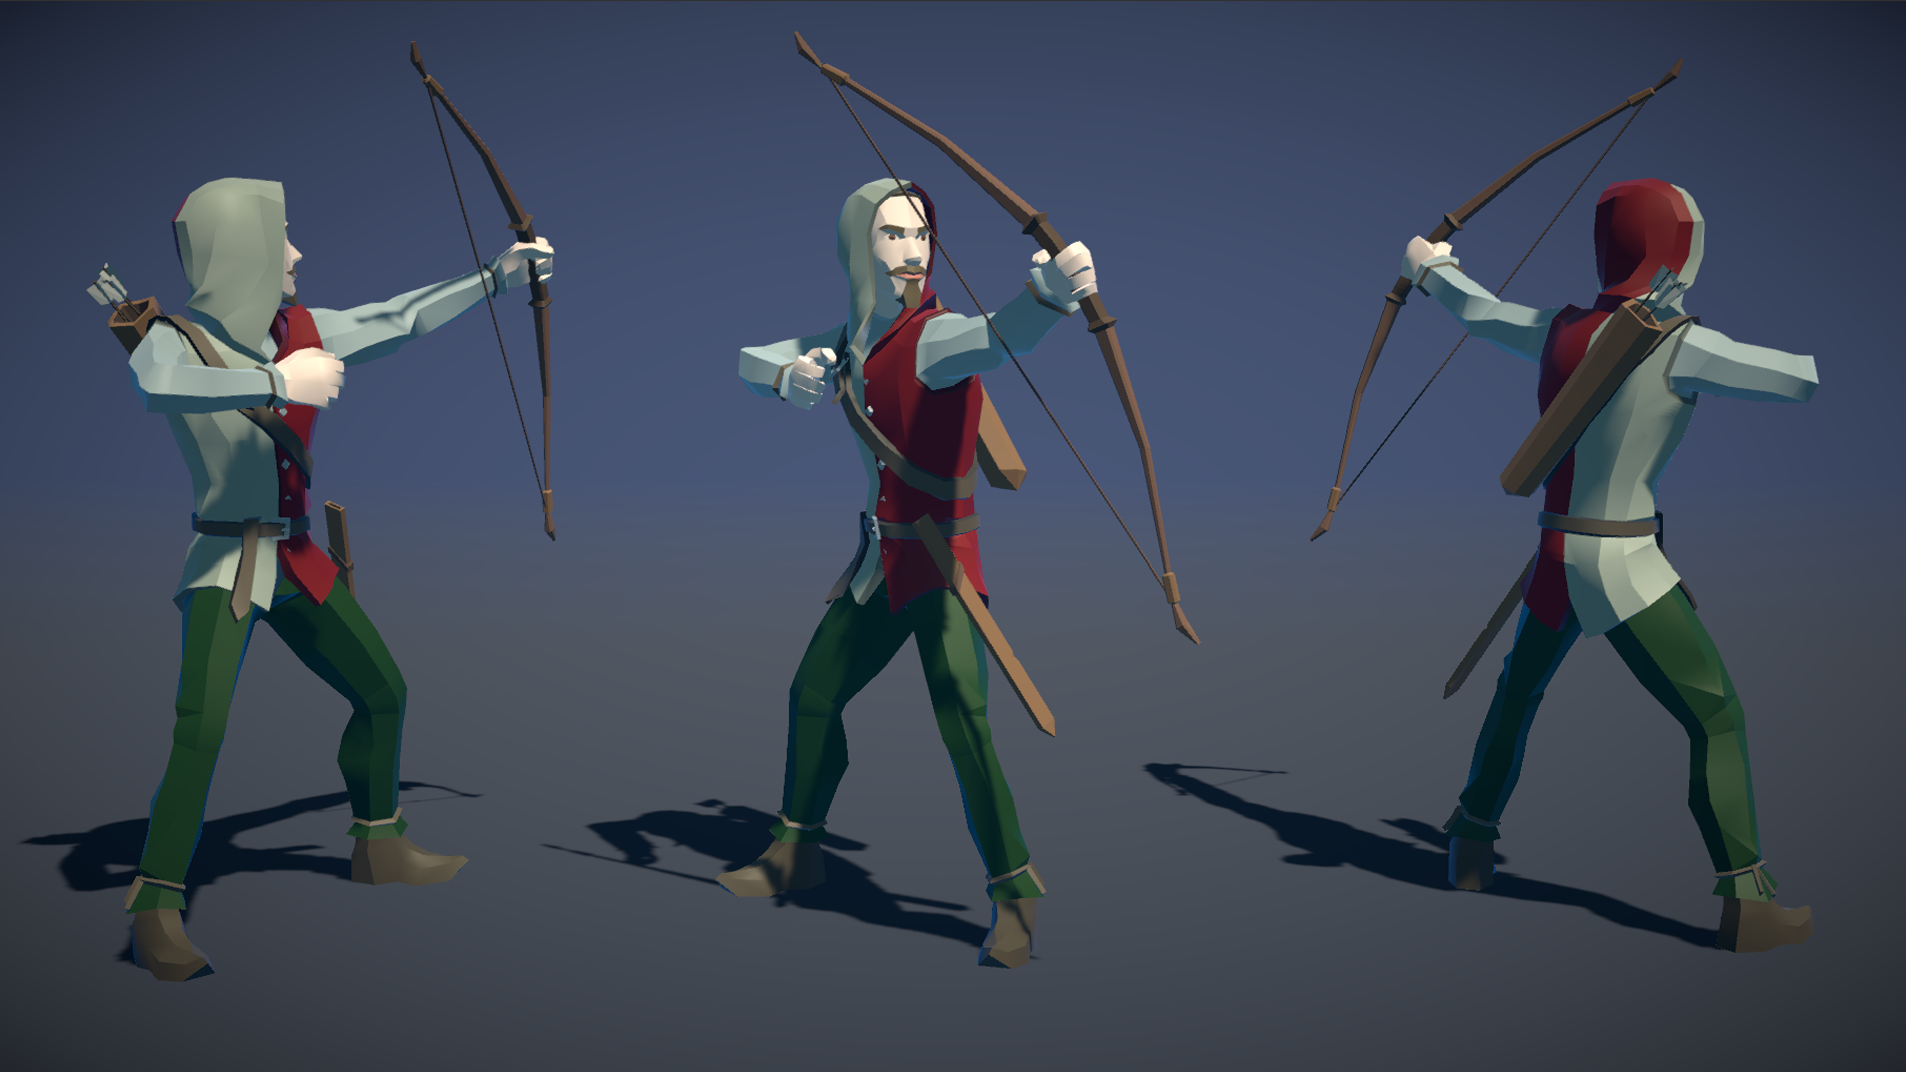 PT_Medieval_Lowpoly_Characters_Archer_01.png